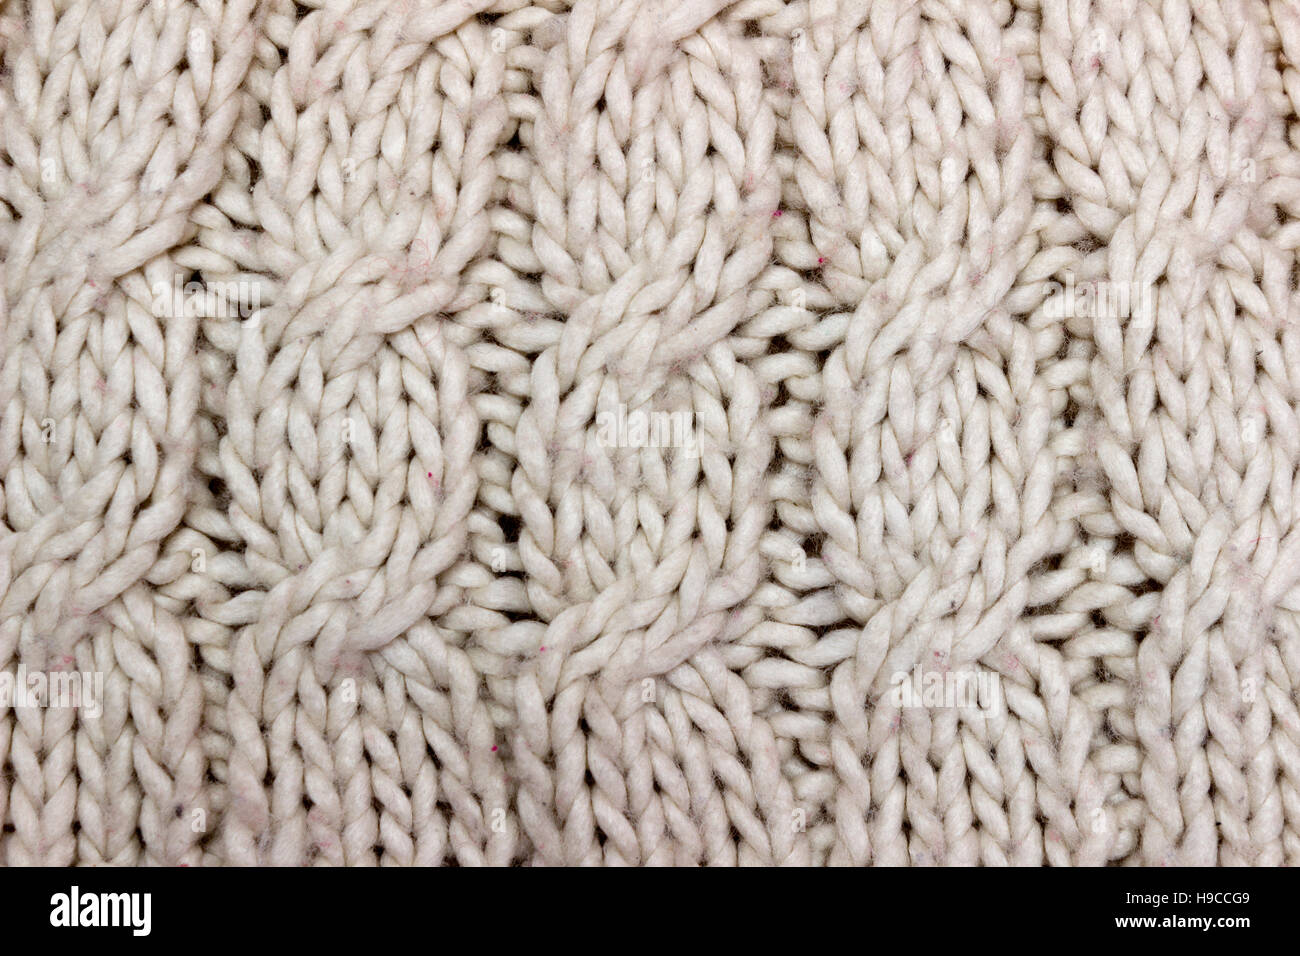 Knitted wool background - Stock Image